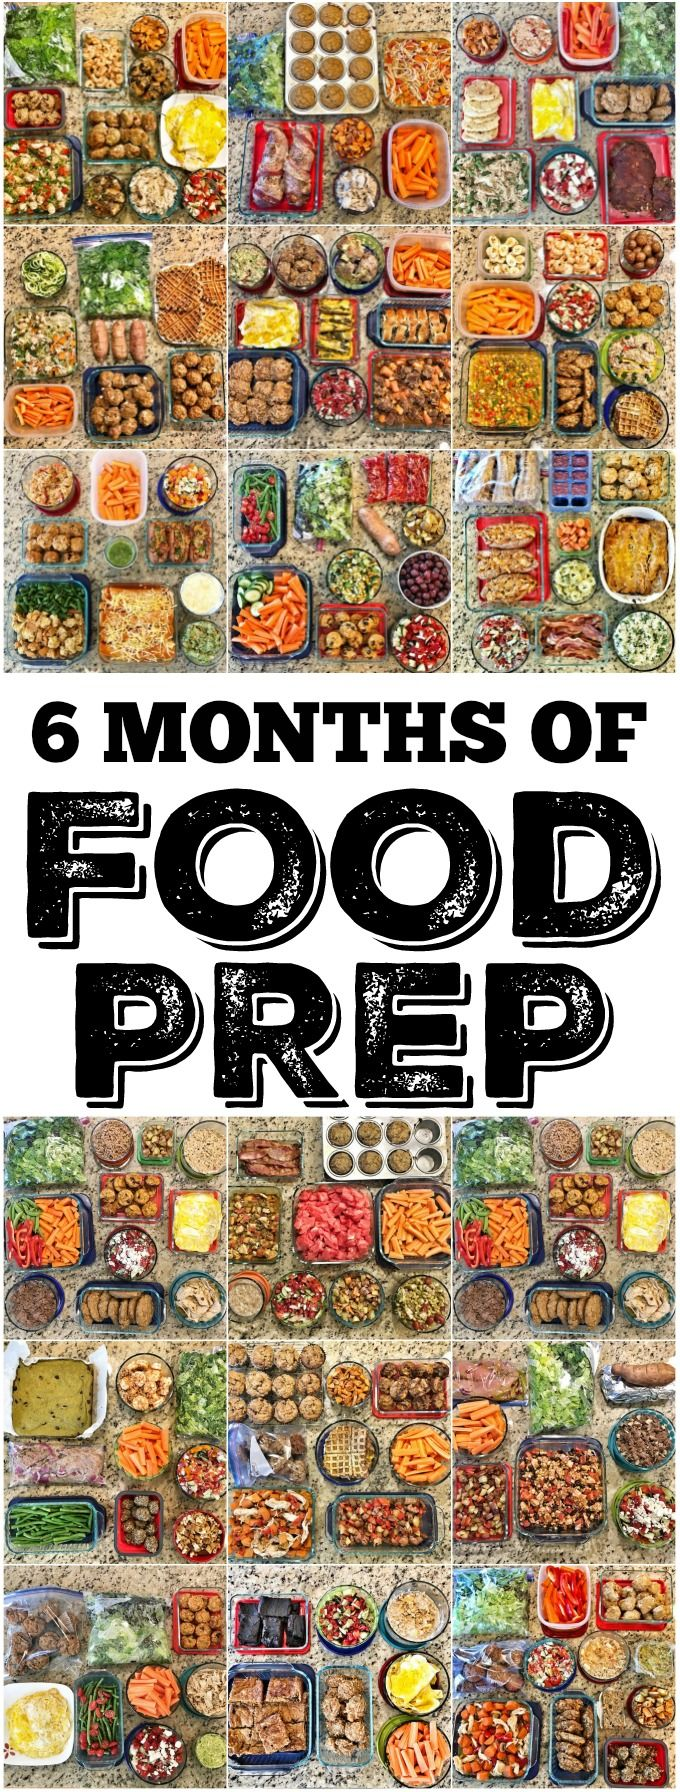 I challenged myself to 6 months of food prep. That means every weekend for six months straight, I spent at least some time prepping food for the week ahead. Here's what I learned and why I recommend it.